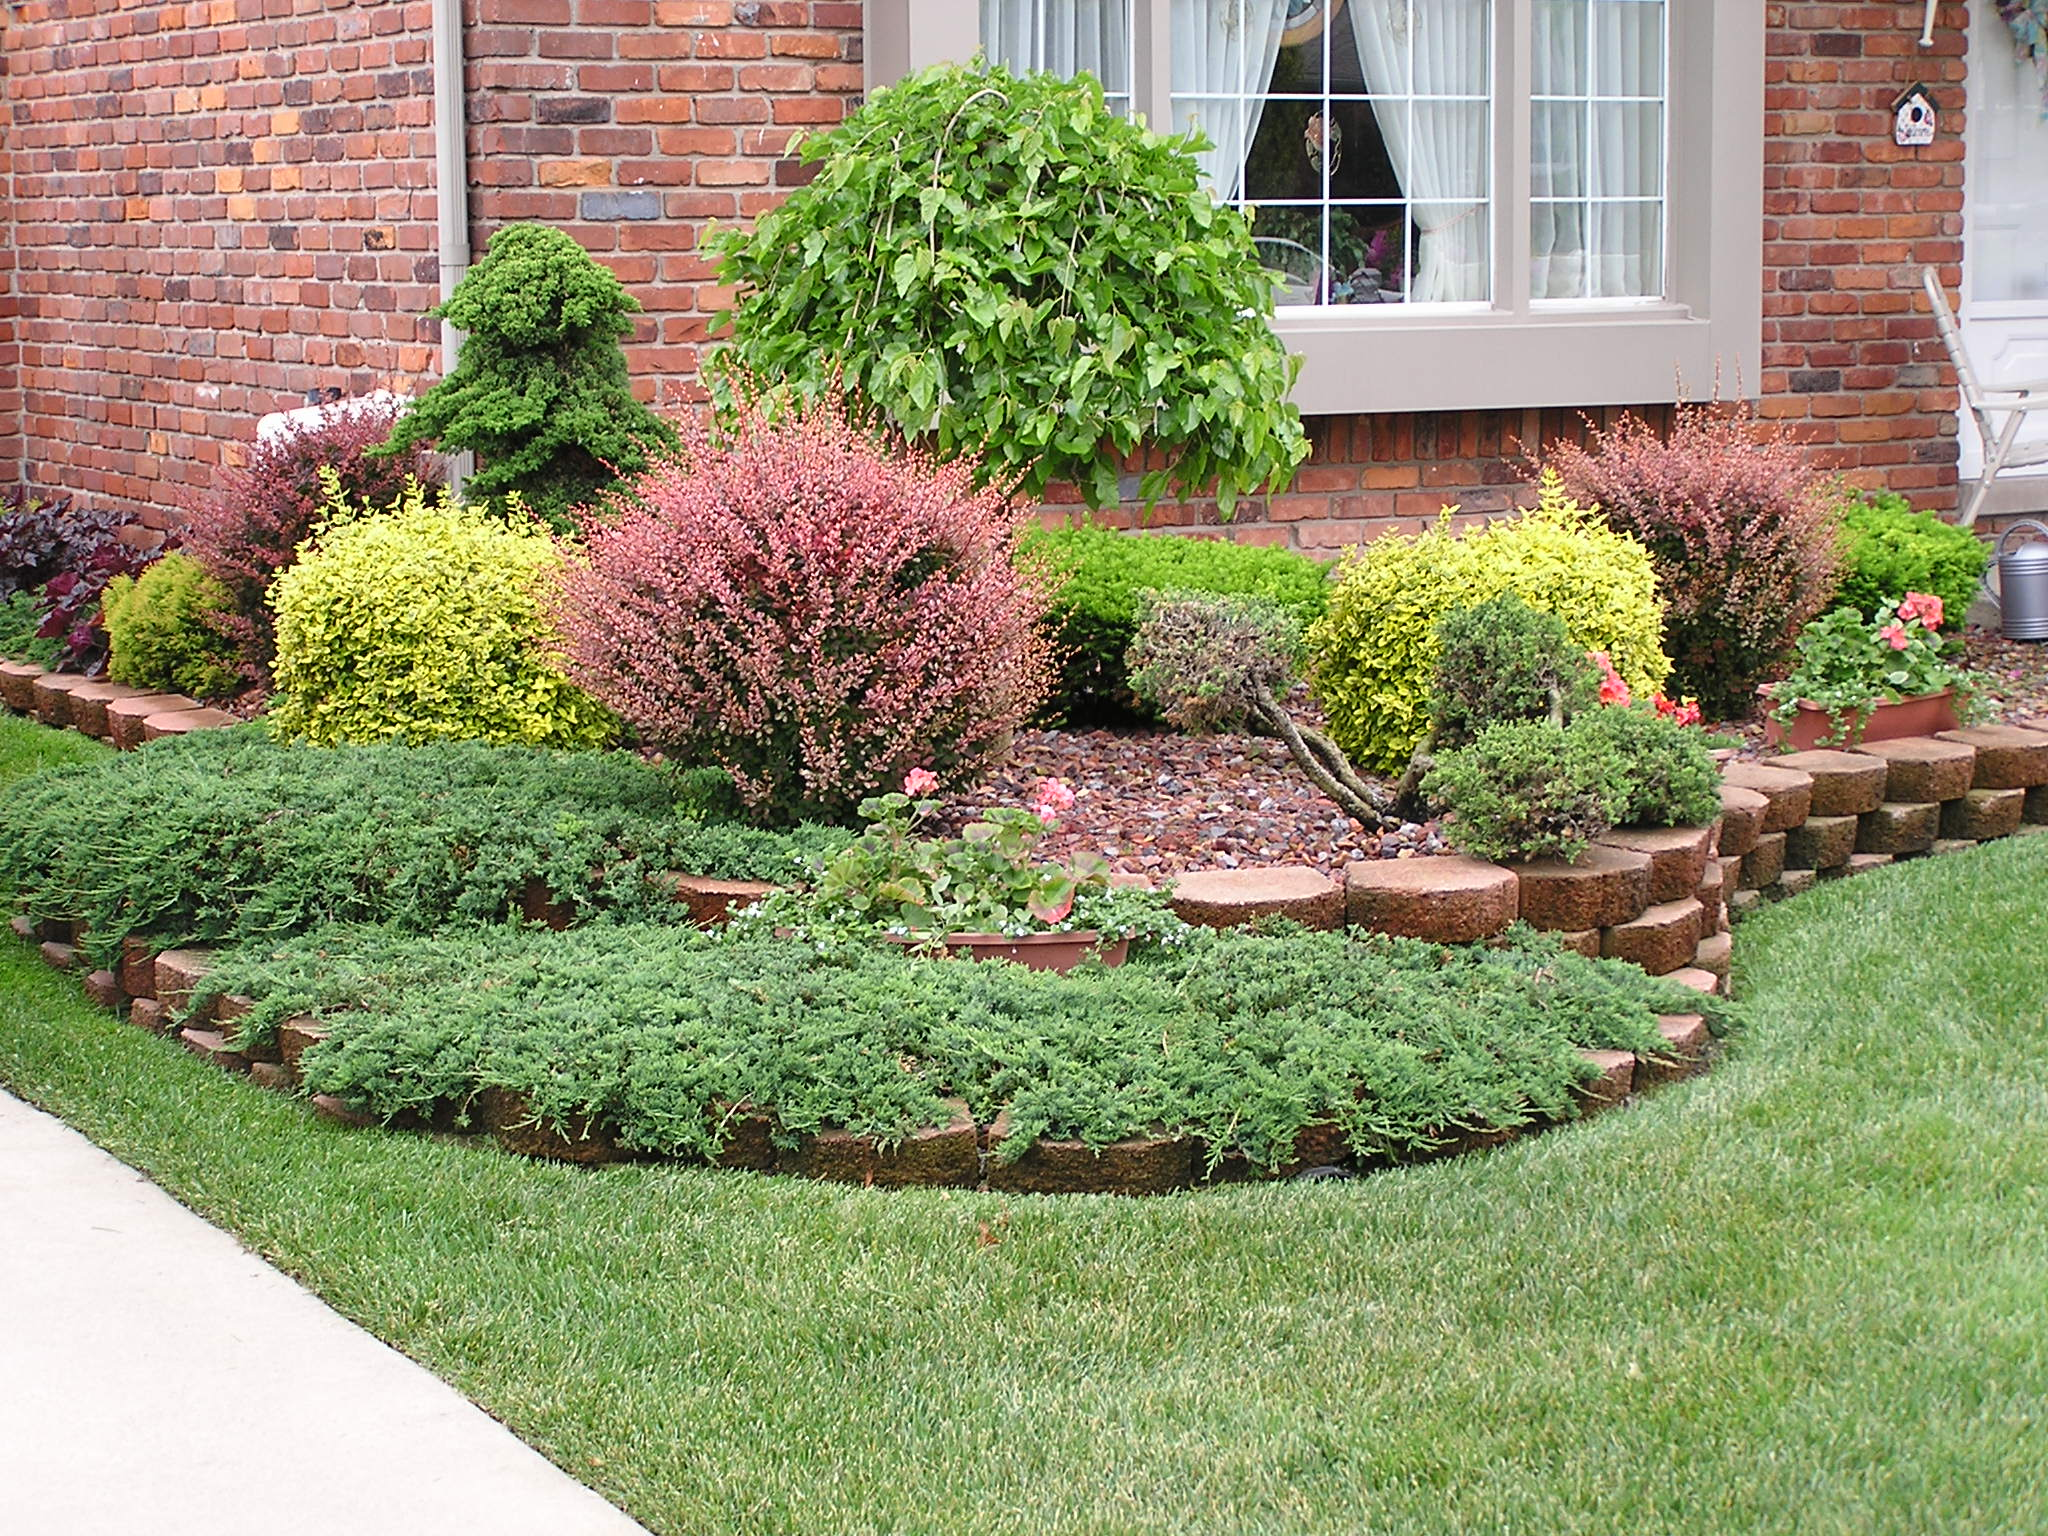 Front yard landscaping ideas for Landscaping ideas for my front yard